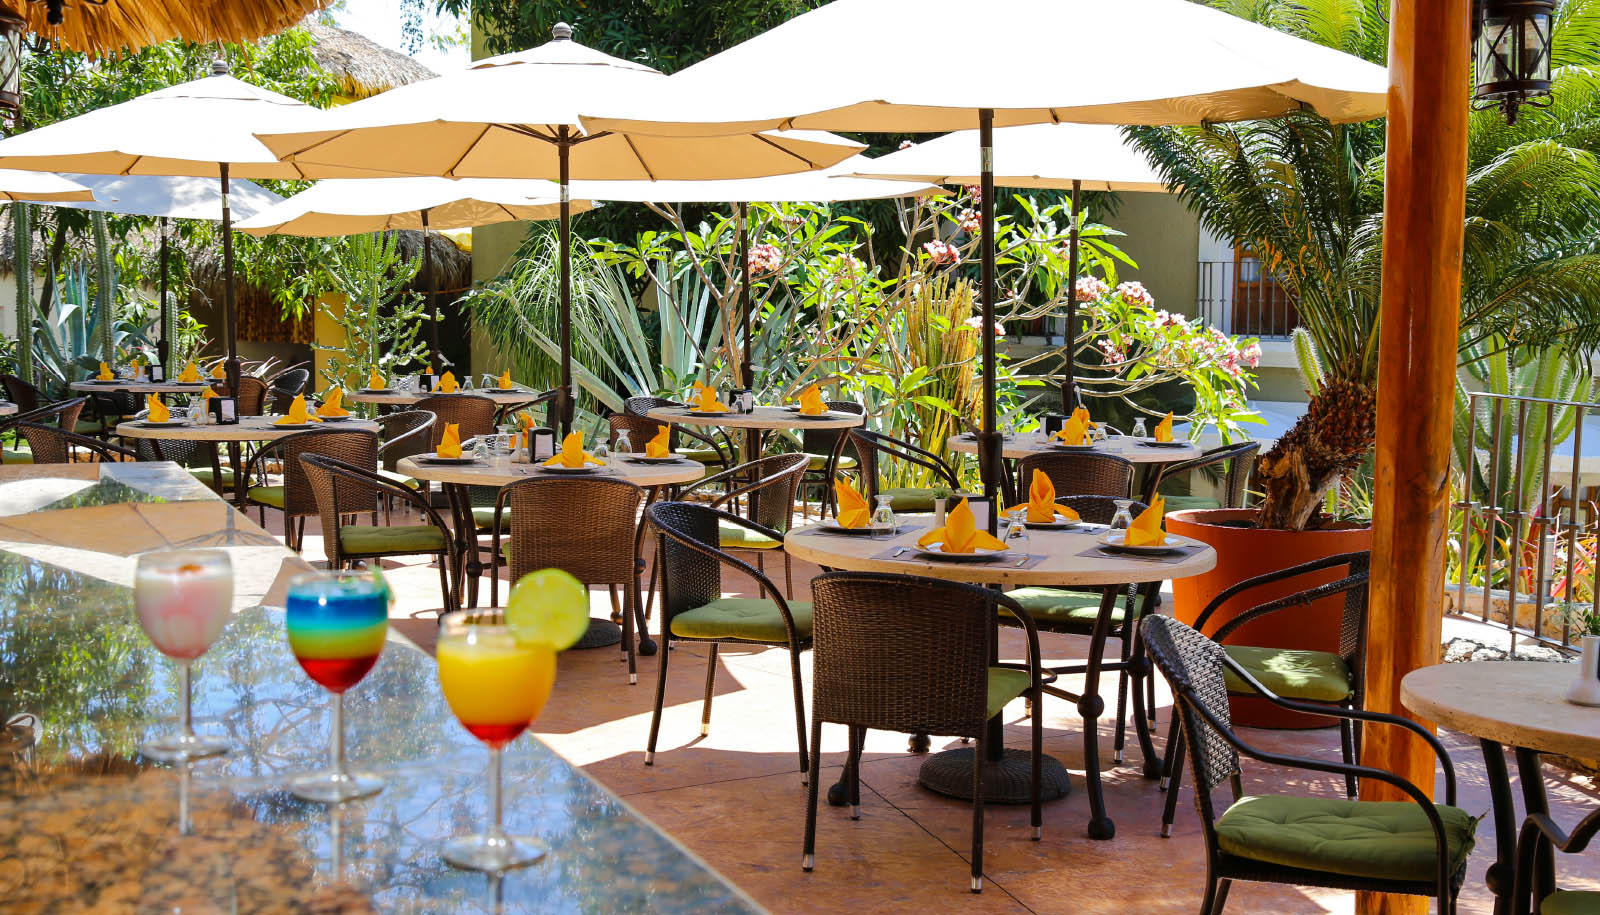 hotel binniguenda huatulco restaurant bar food all inclusive services facilities amenities